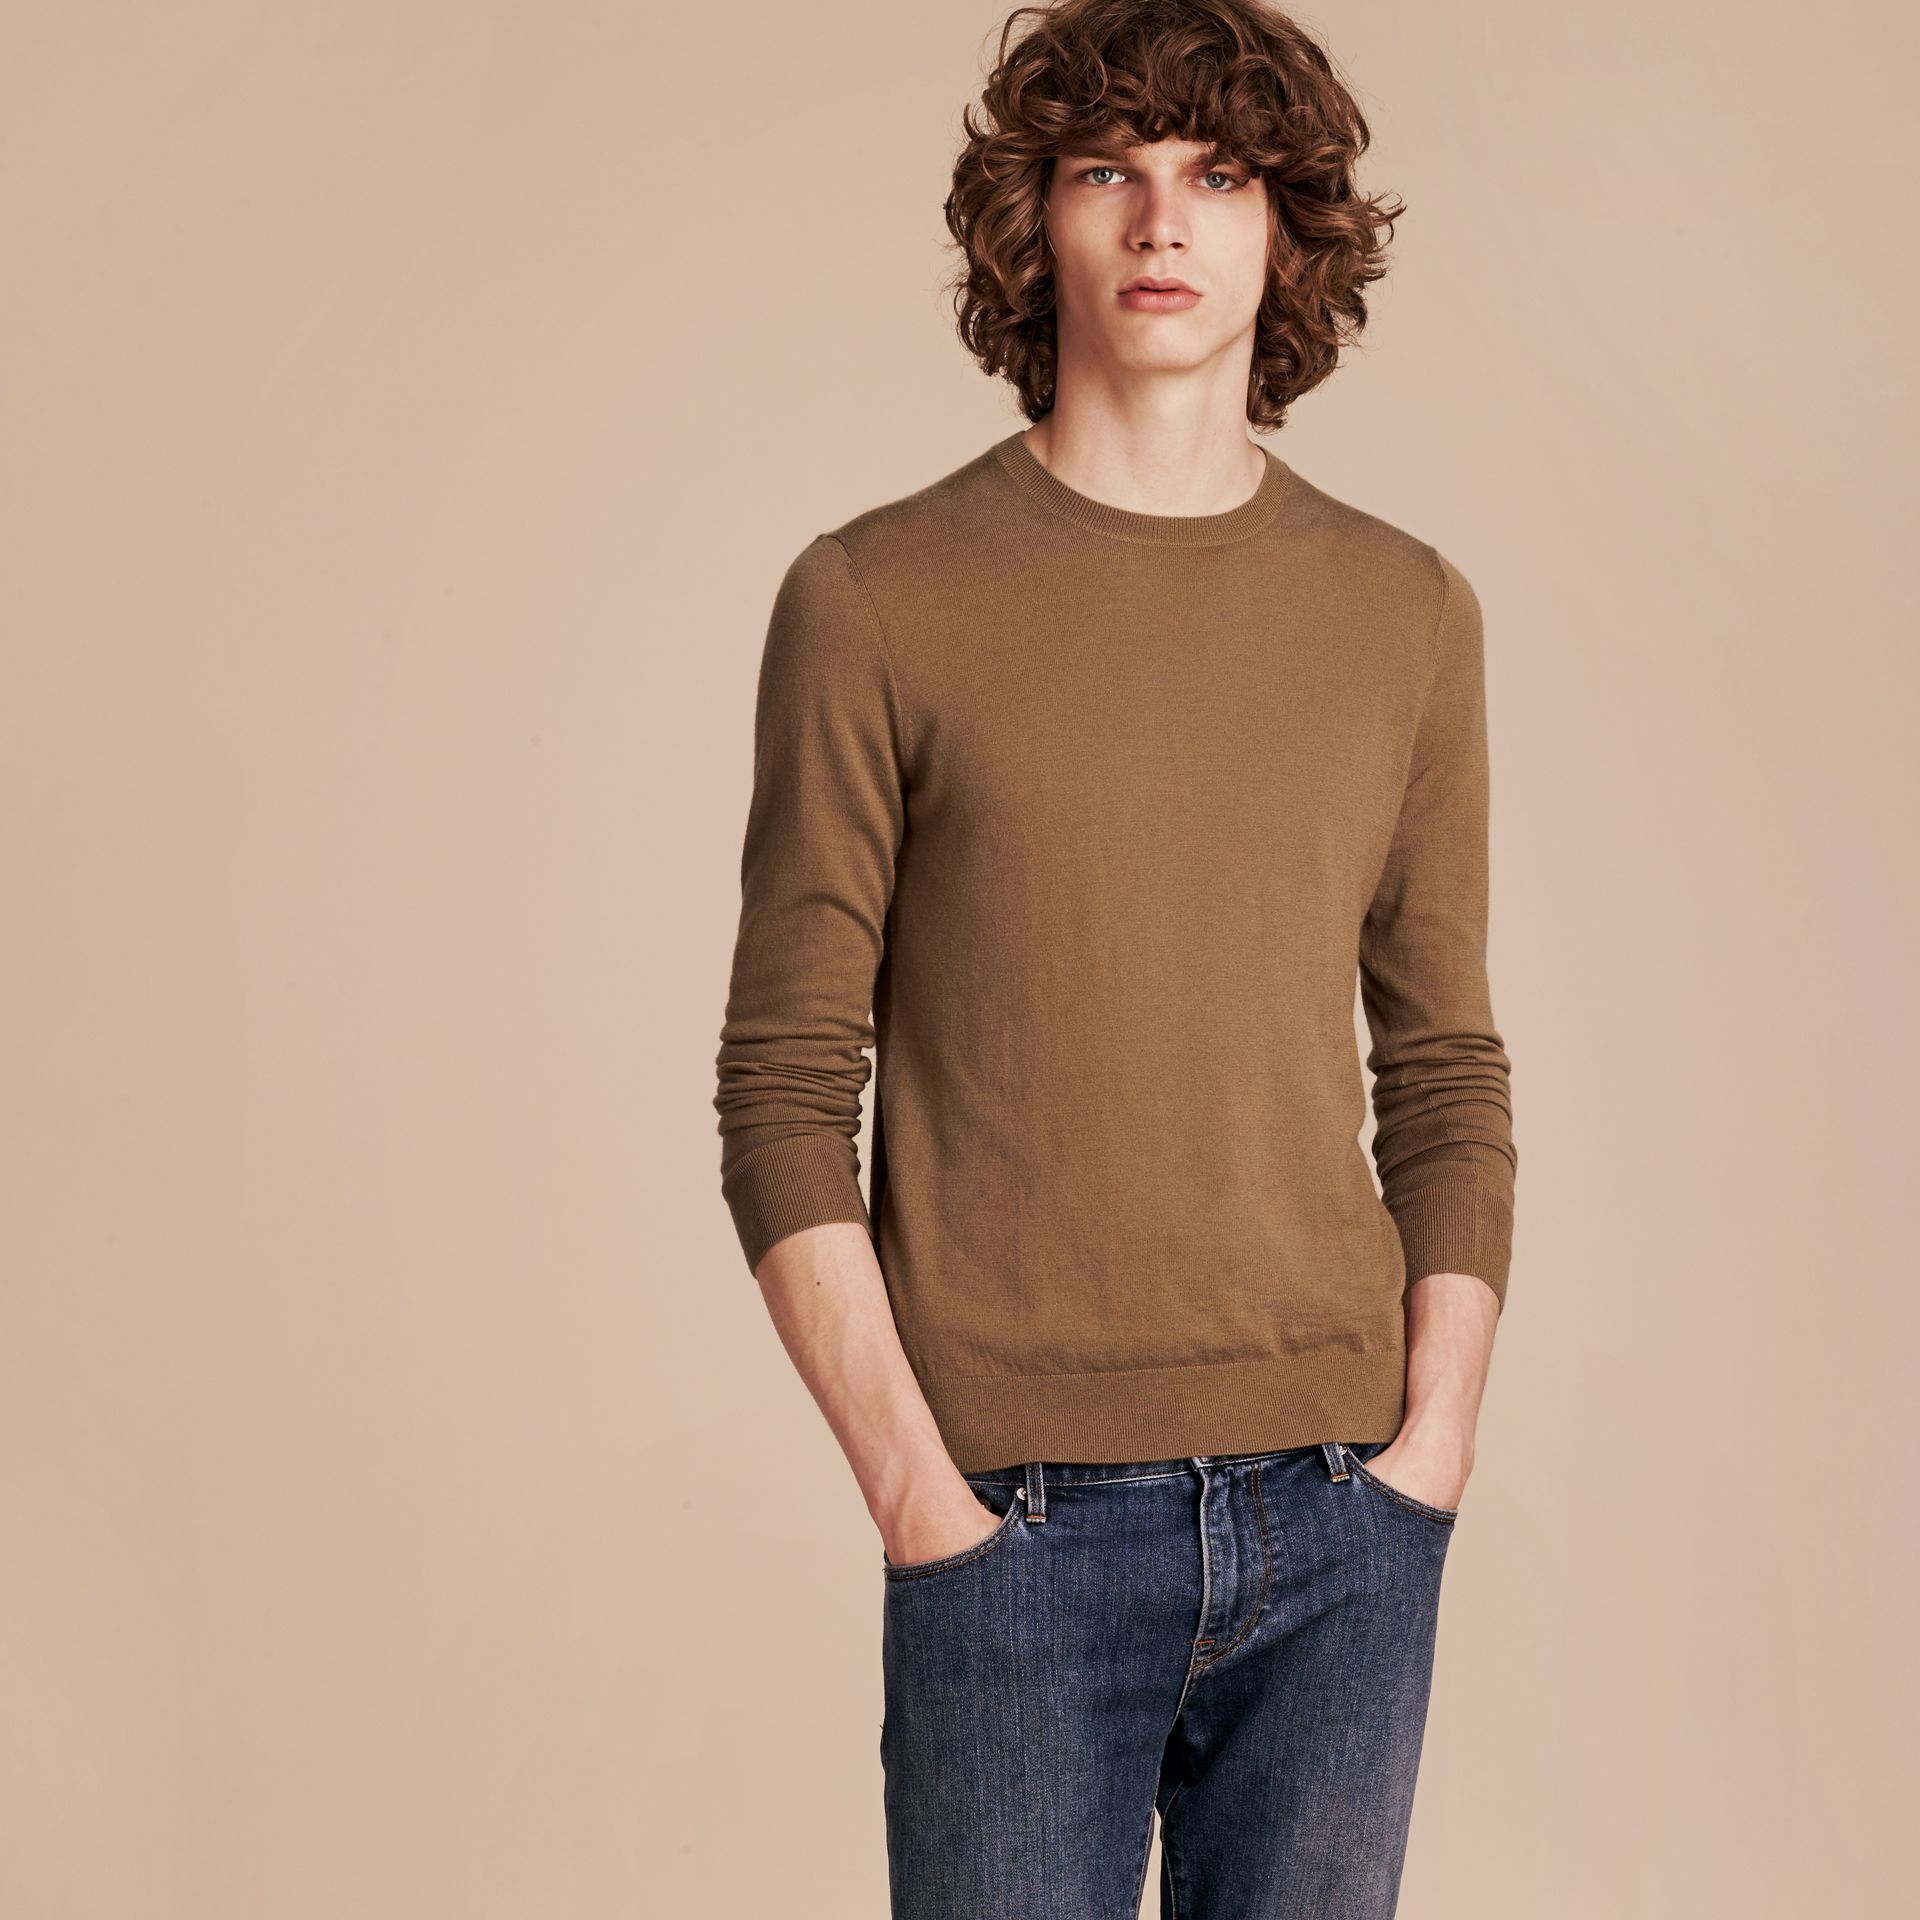 Camel Lightweight Crew Neck Cashmere Sweater with Check Trim Camel - gallery image 6